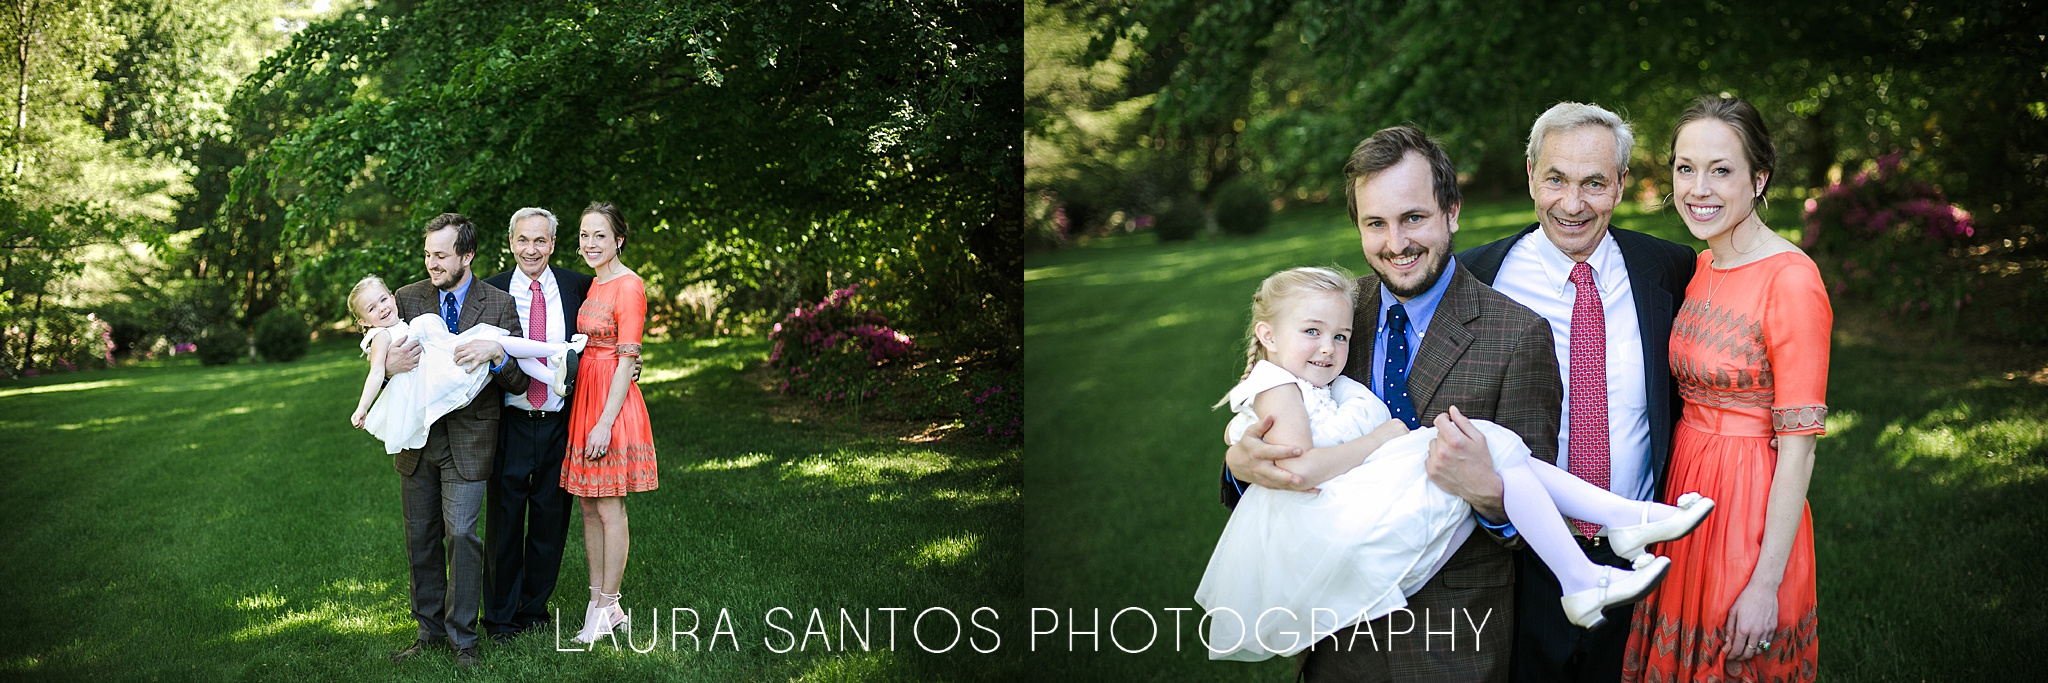 Laura Santos Photography Portland Oregon Family Photographer_0658.jpg